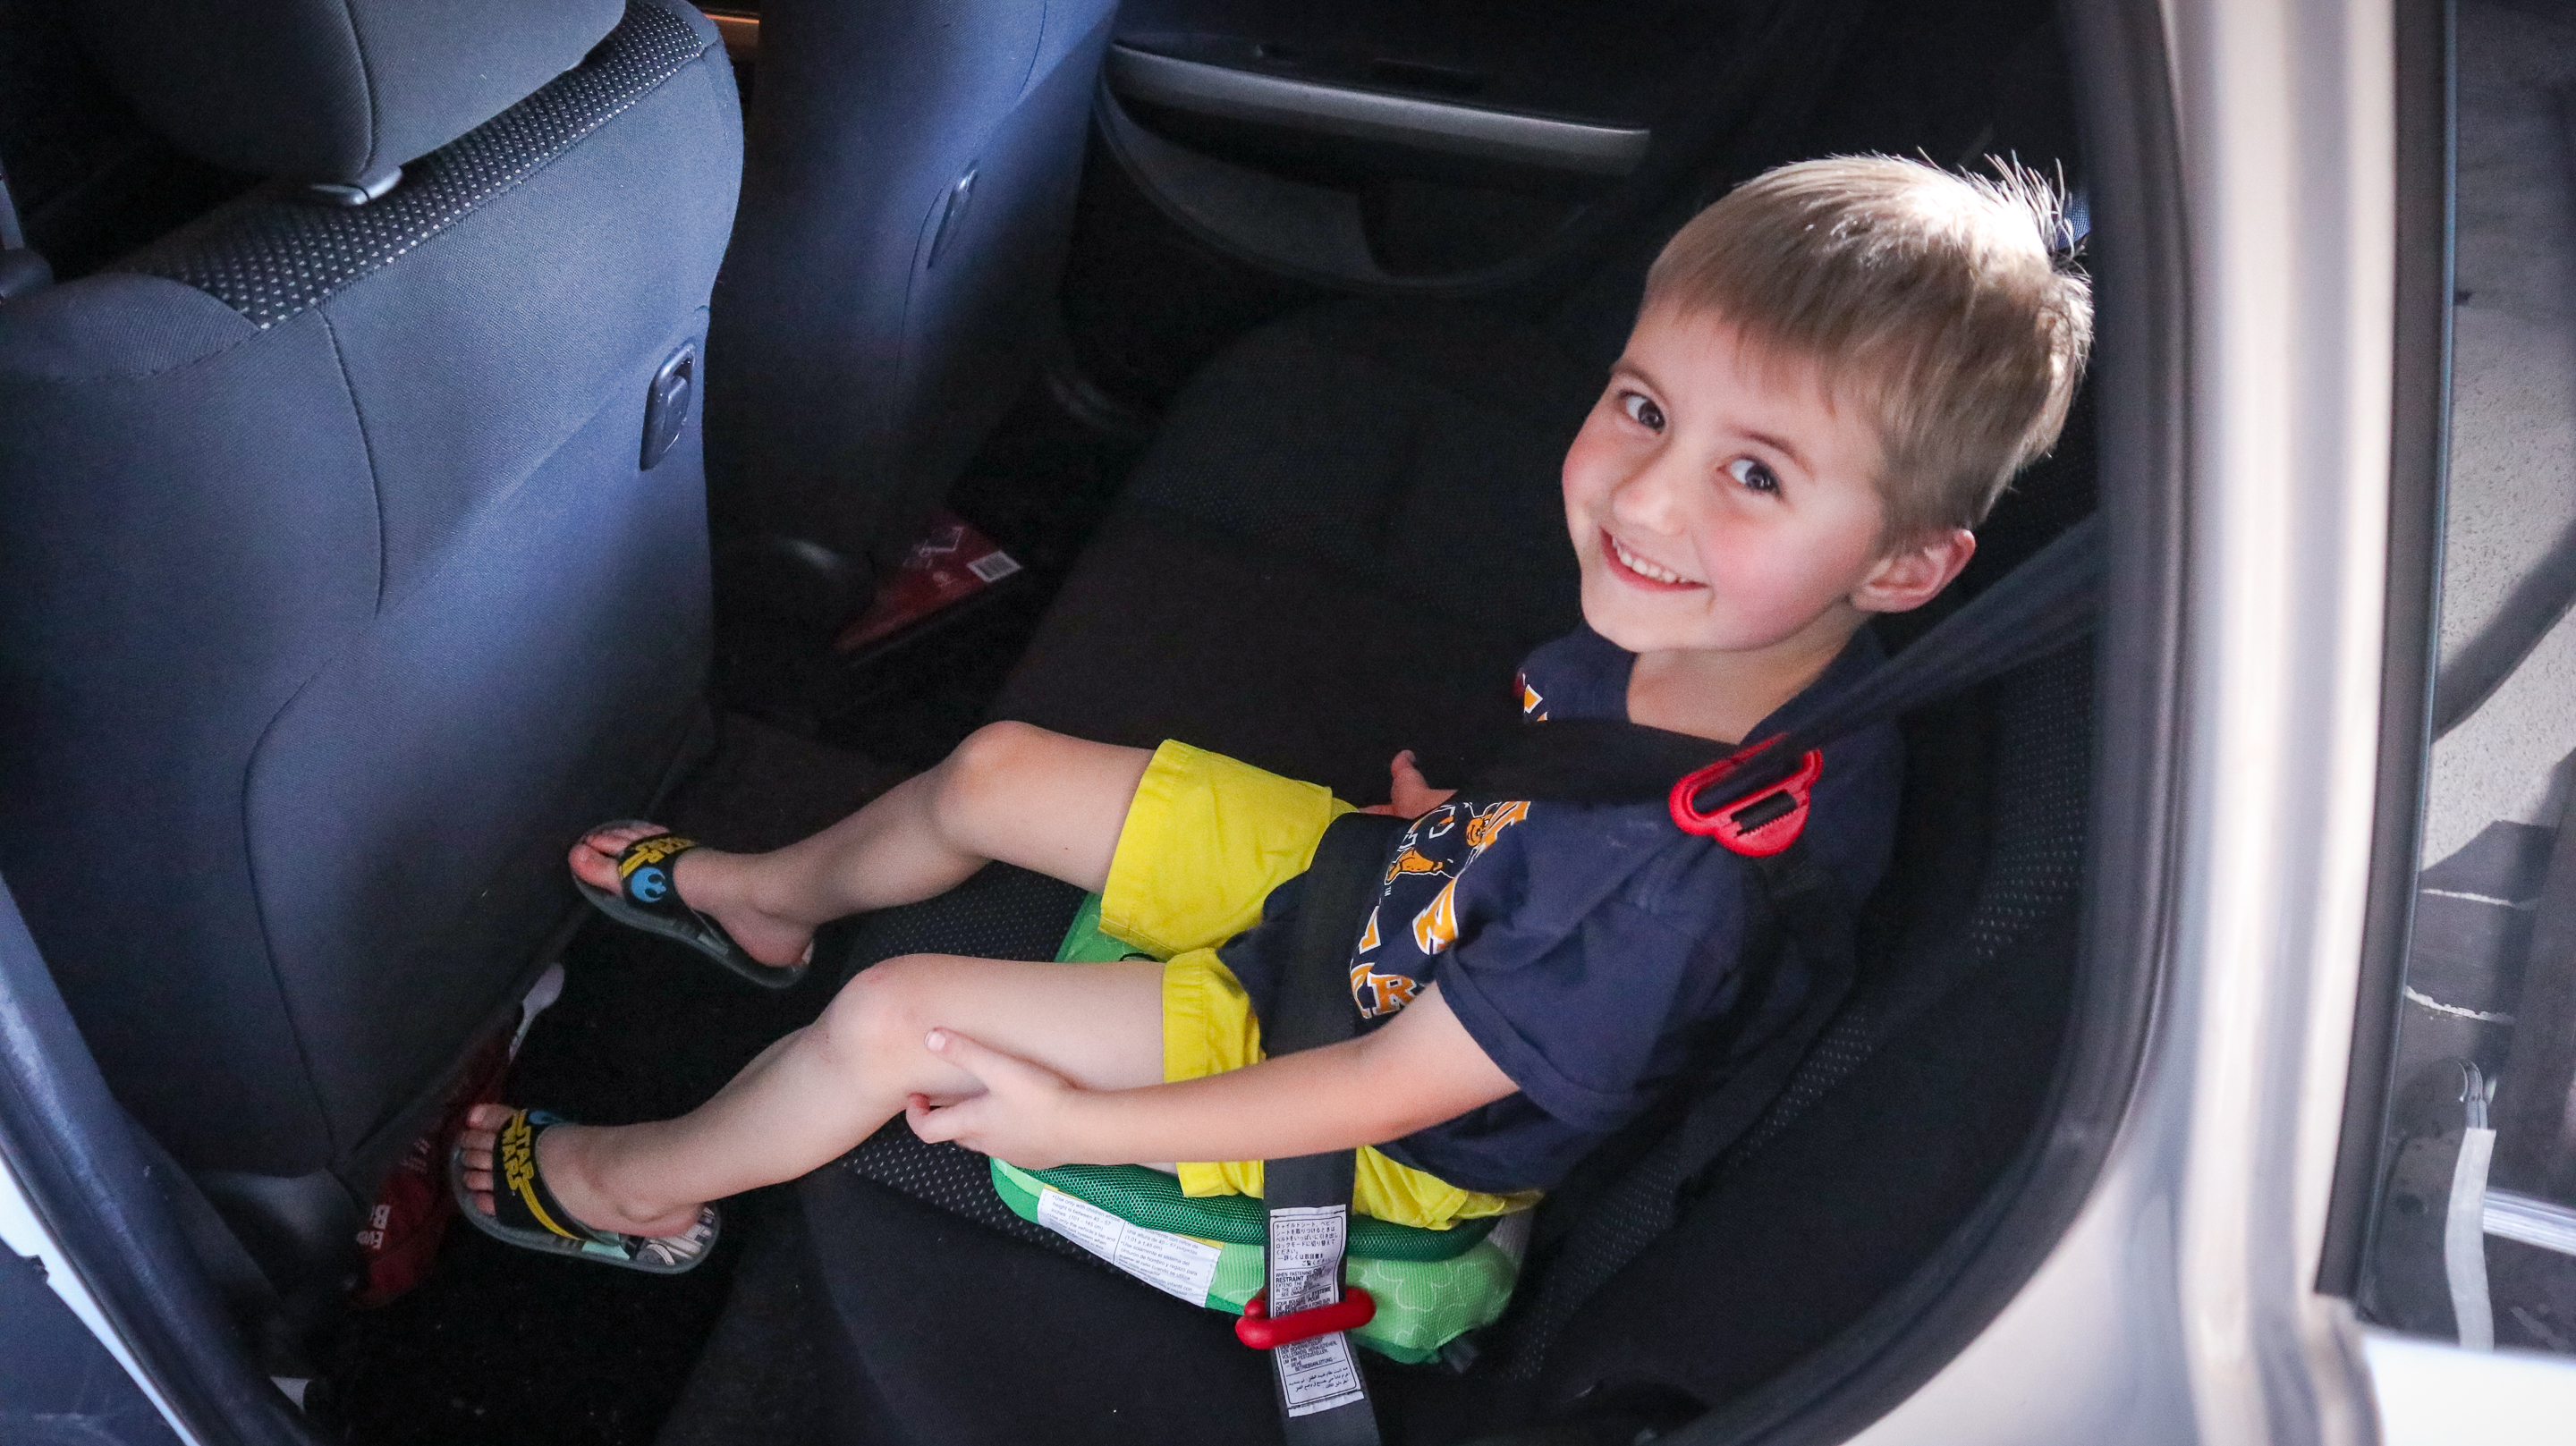 Six year old boy sitting in the back seat of a car, testing out the Bubblebum travel car seat